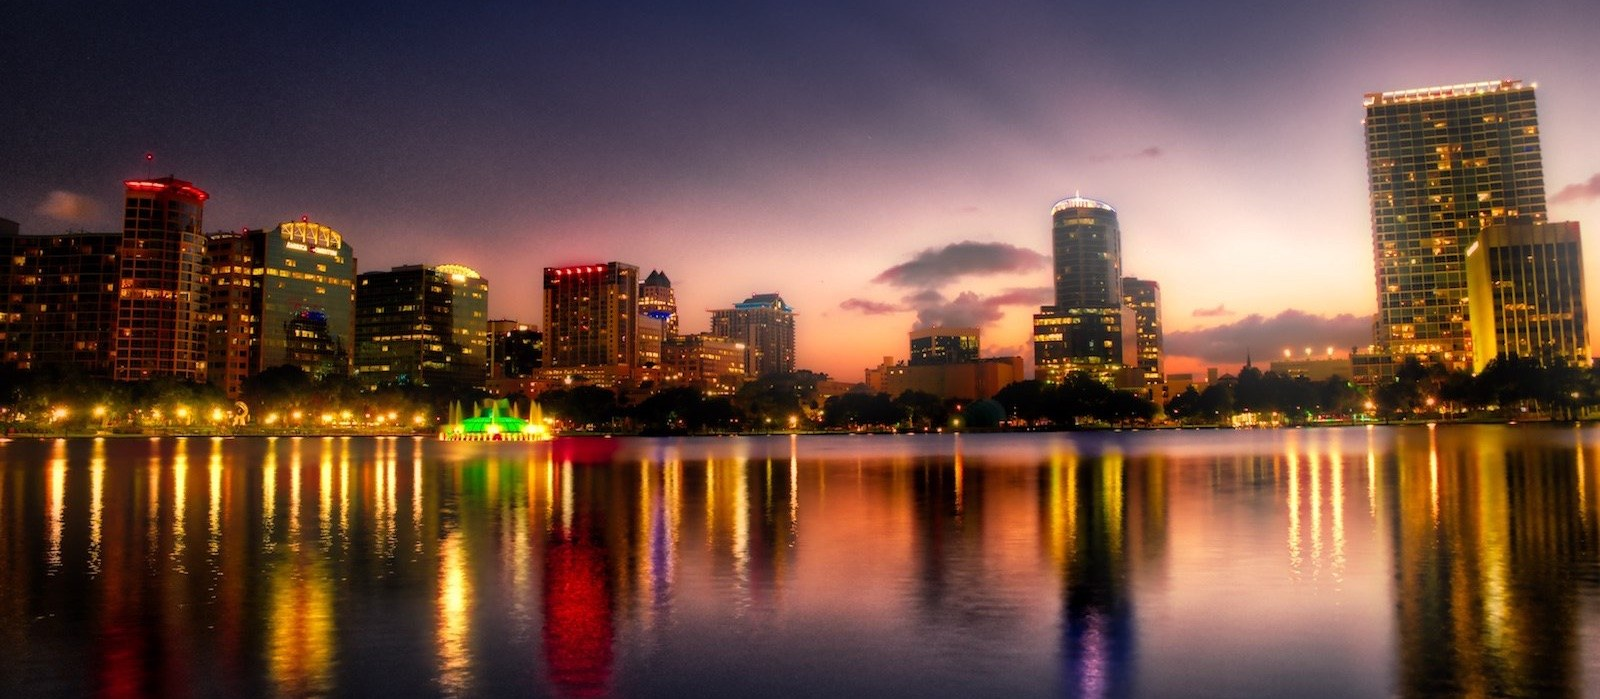 Downtown Orlando in HDR Copyright Daniel Ruyter 2016